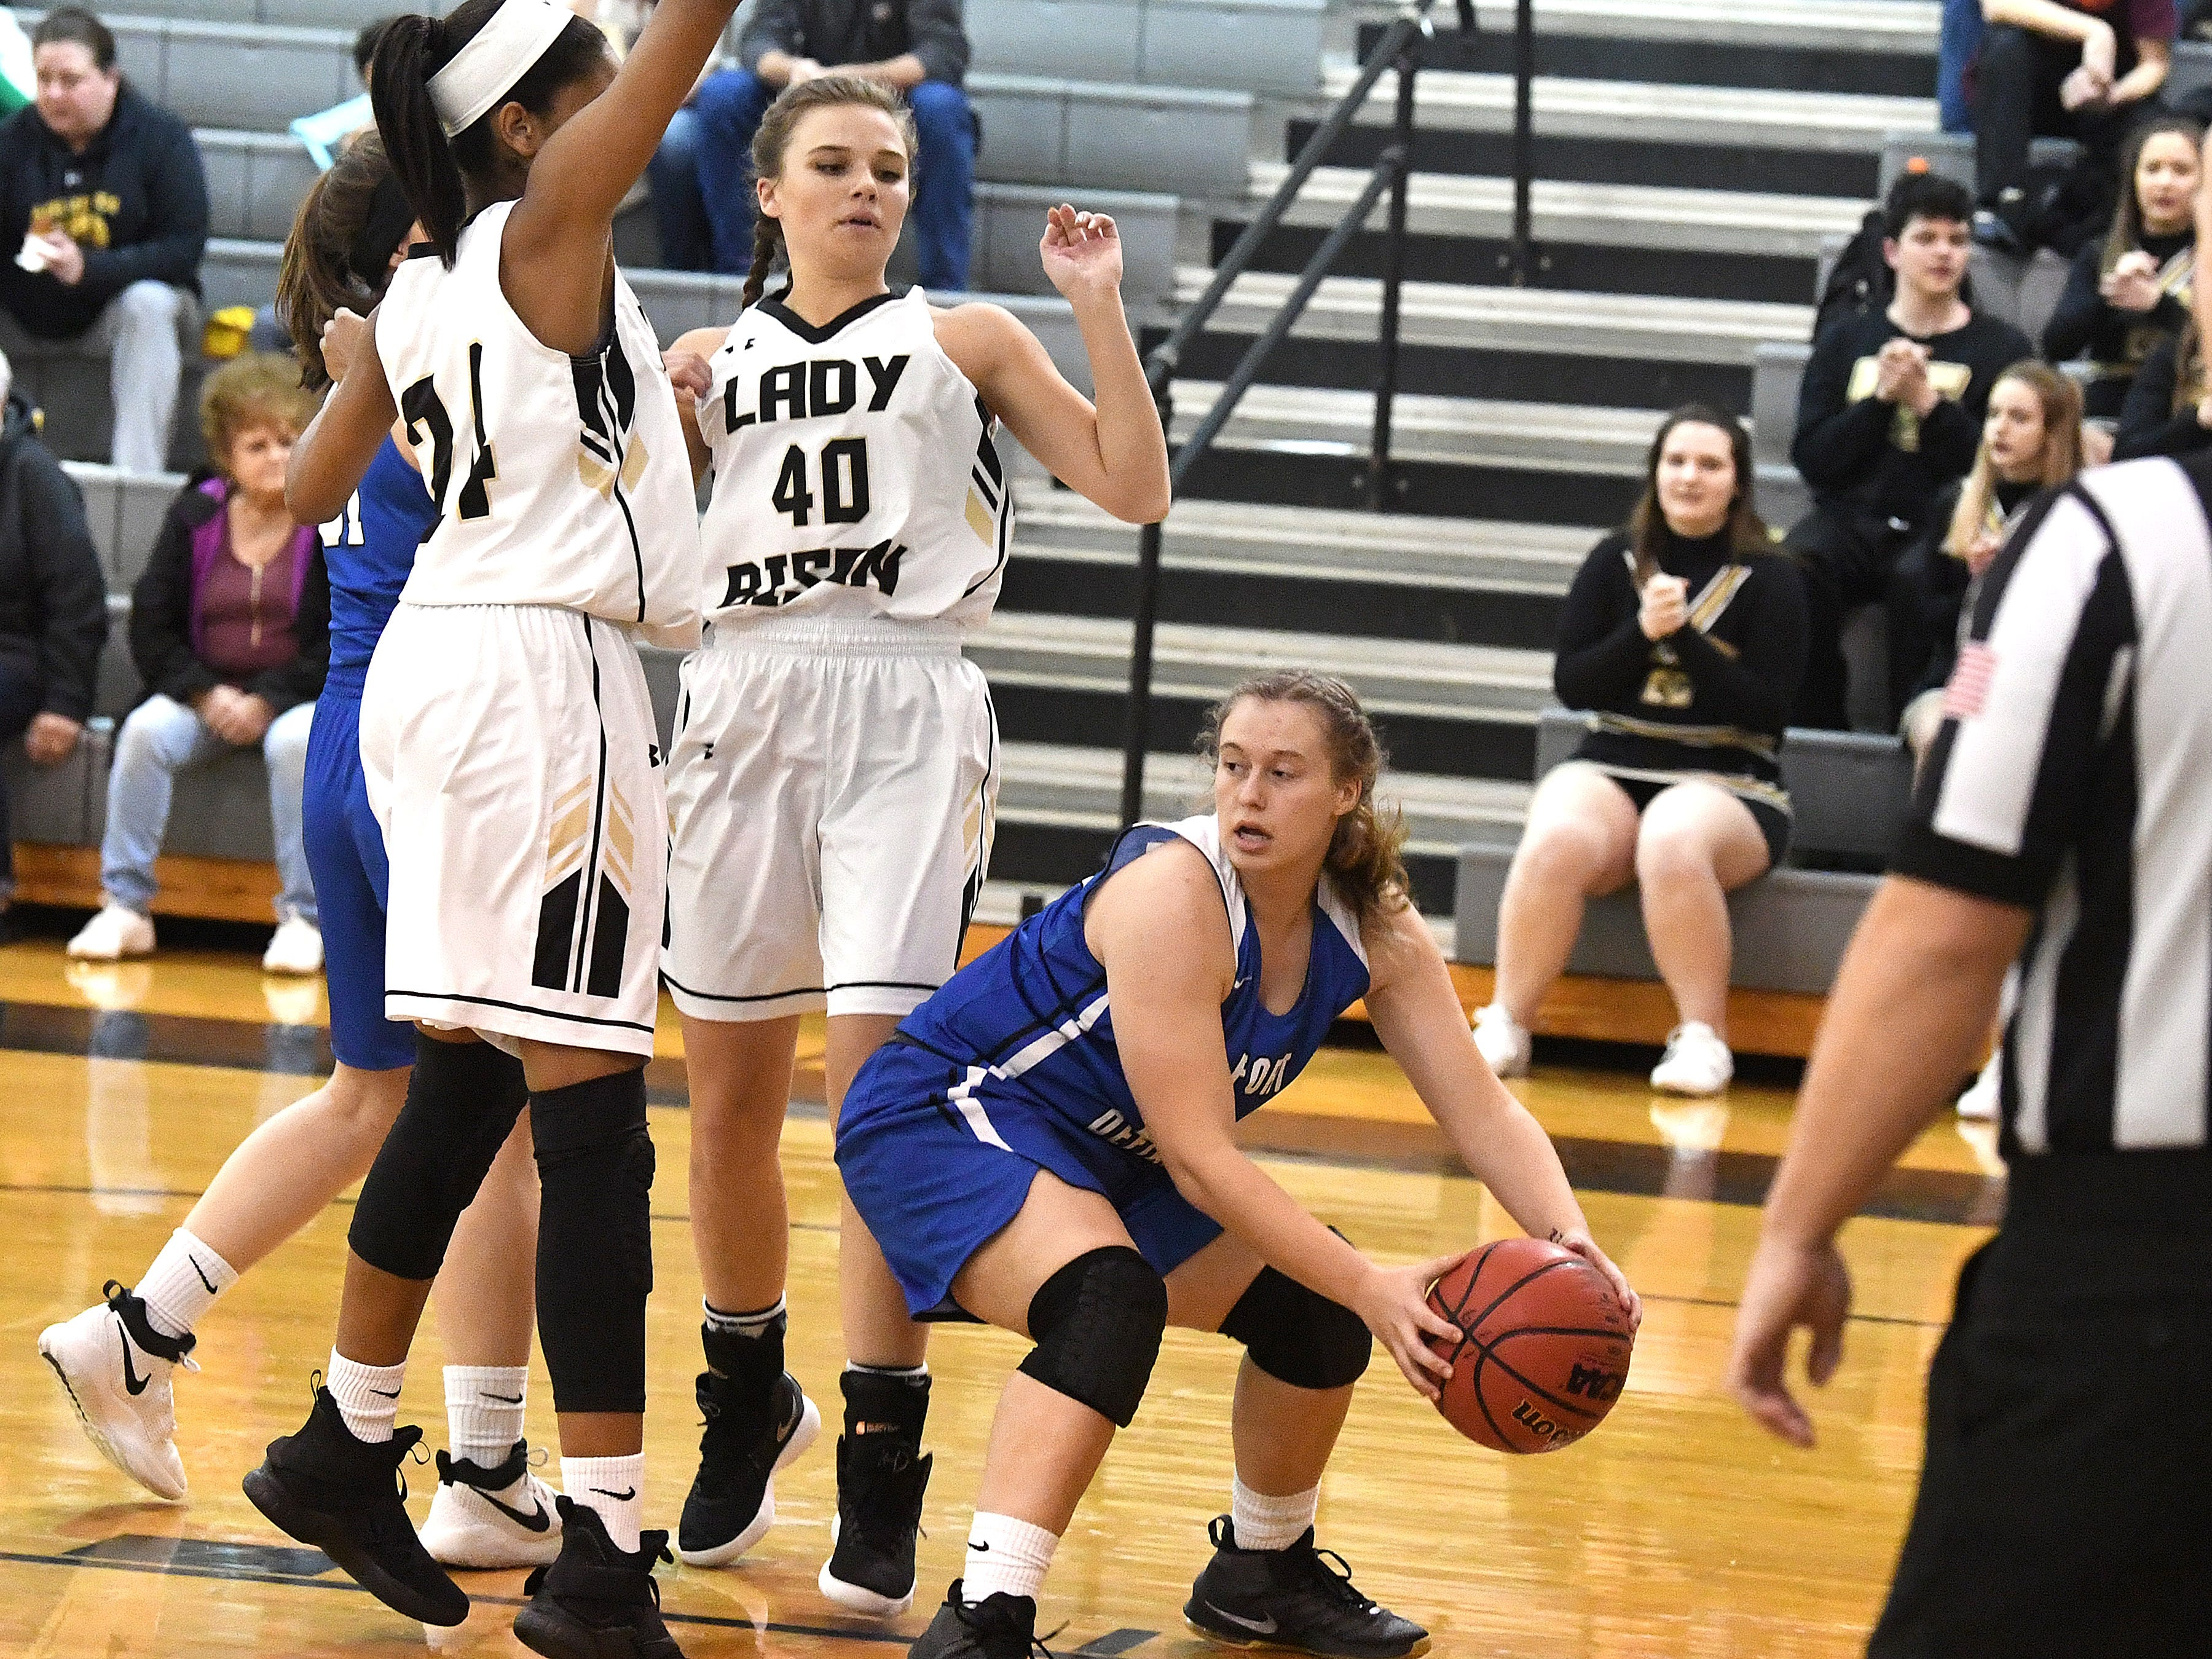 Fort Defiance's Meredith Lloyd has the ball as she is guarded by Buffalo Gap's Amaya Lucas (#24) and Sydney Digman (#40) during a game played in Swoope on Wednesday, Dec. 5, 2018.